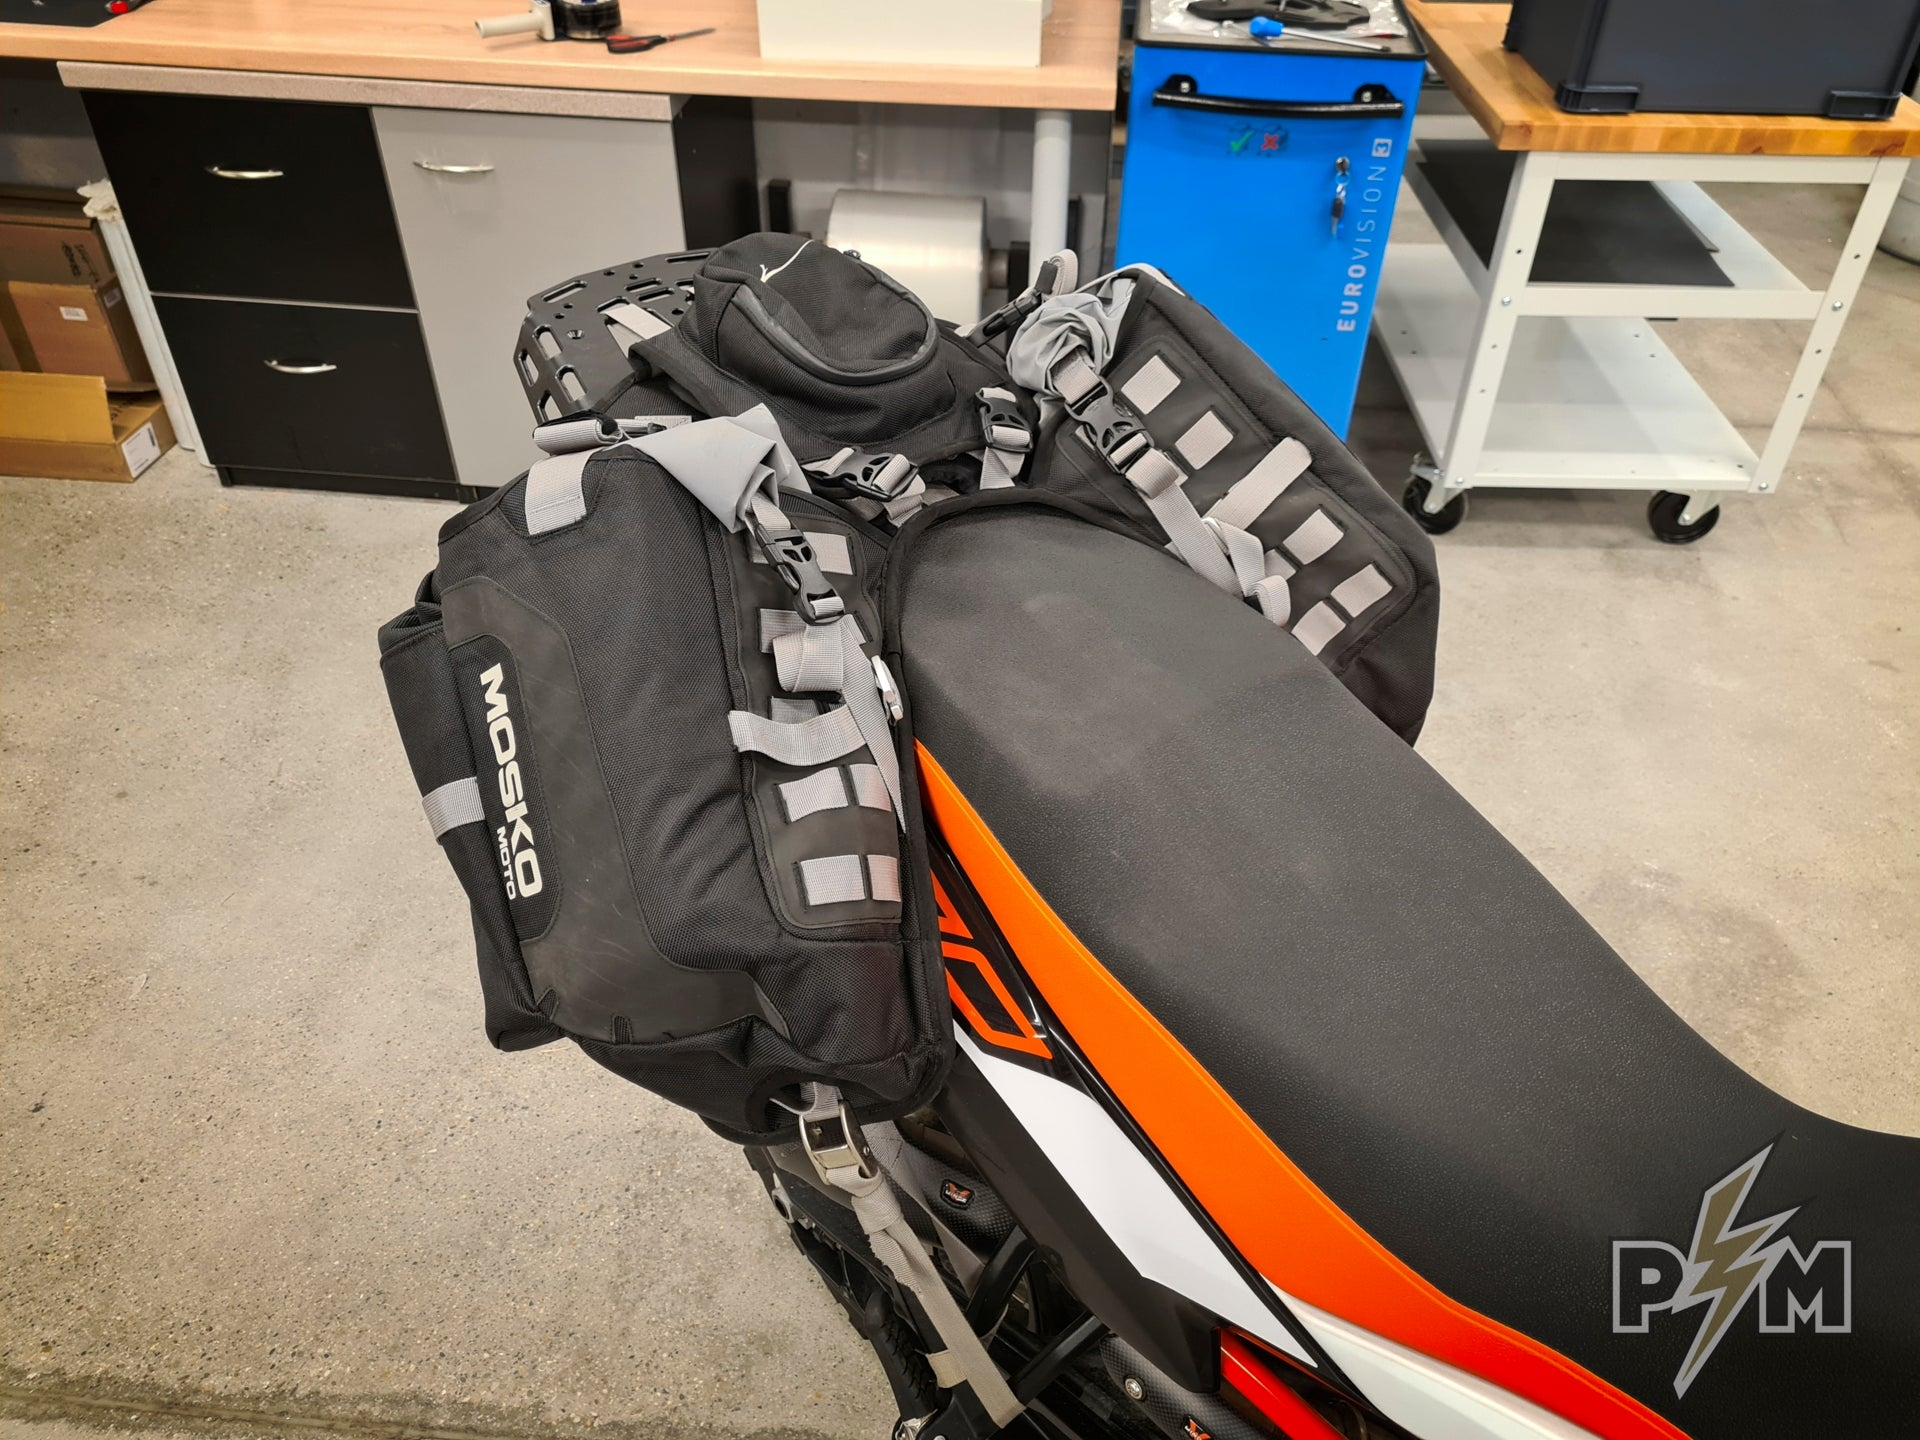 Mosko moto Reckless 40 and 80 on KTM 790/890 Adventure with our Billet rack - Large